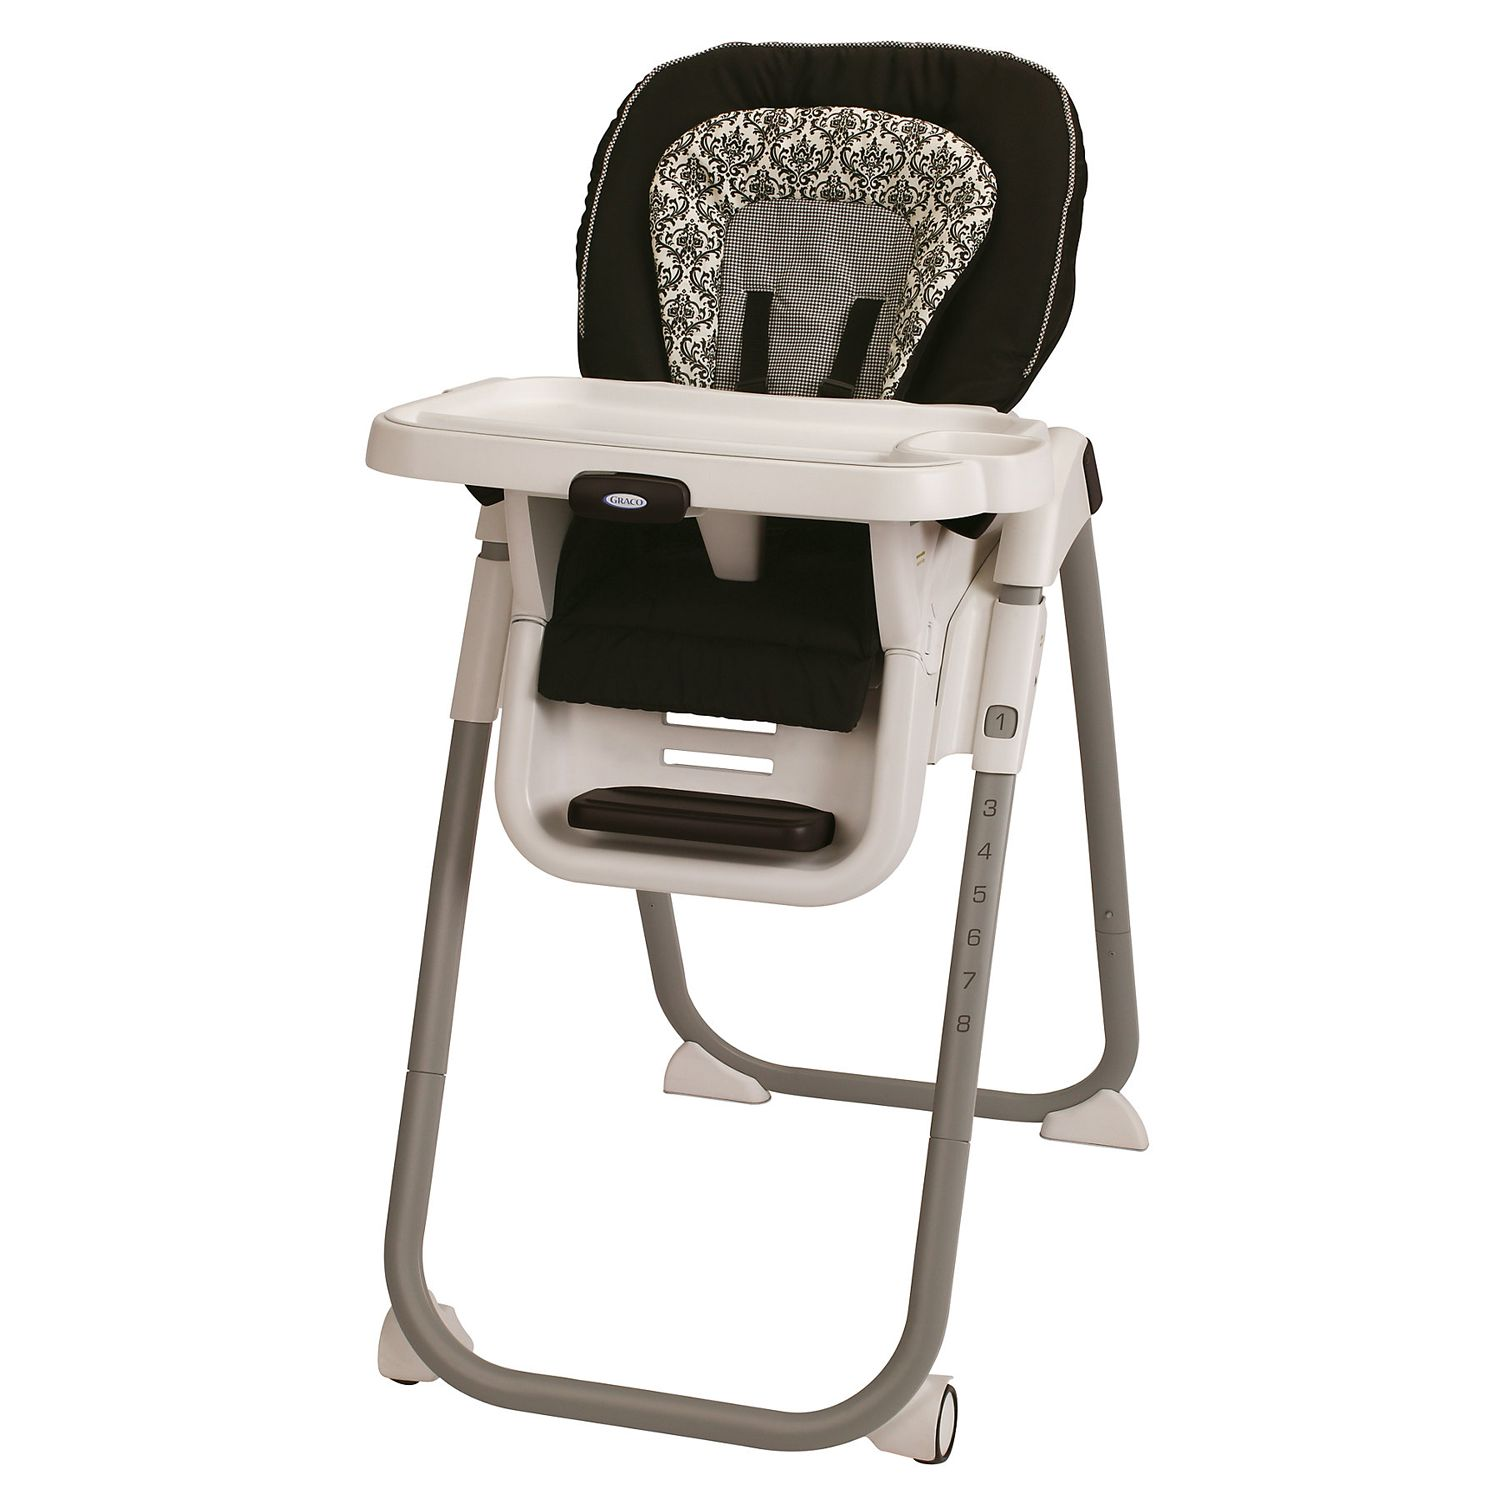 Chair High Chair Graco Table Fit High Chair Rittenhouse